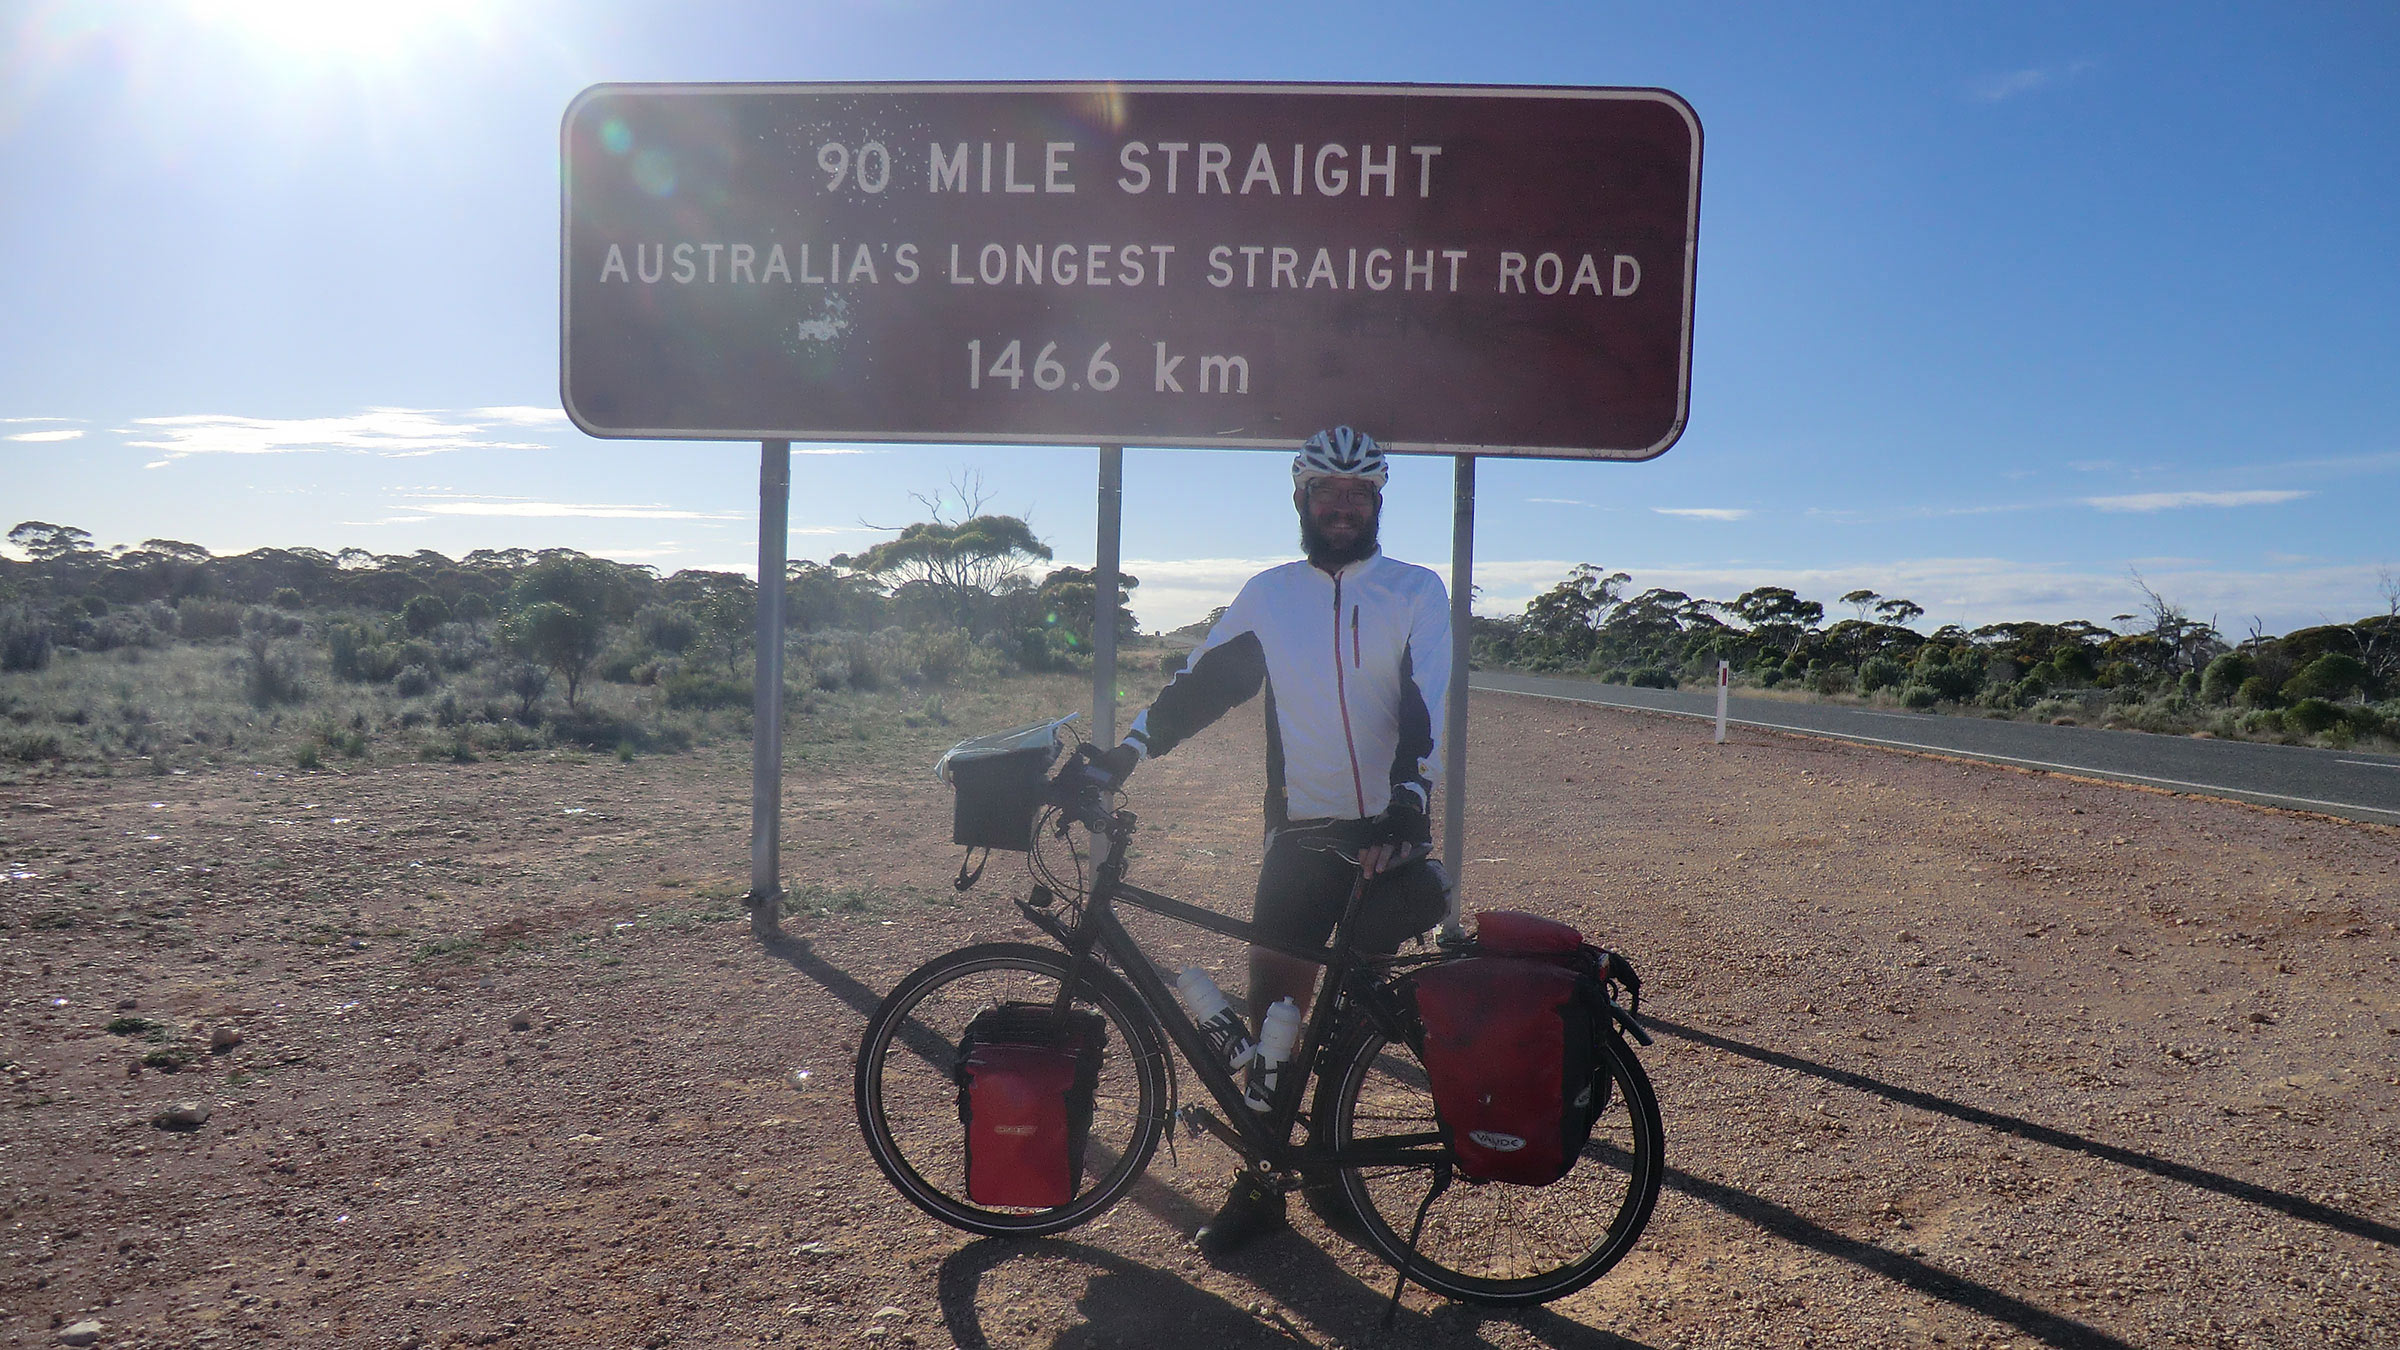 Frank in front of a sign that announces Australia's longest straight road.